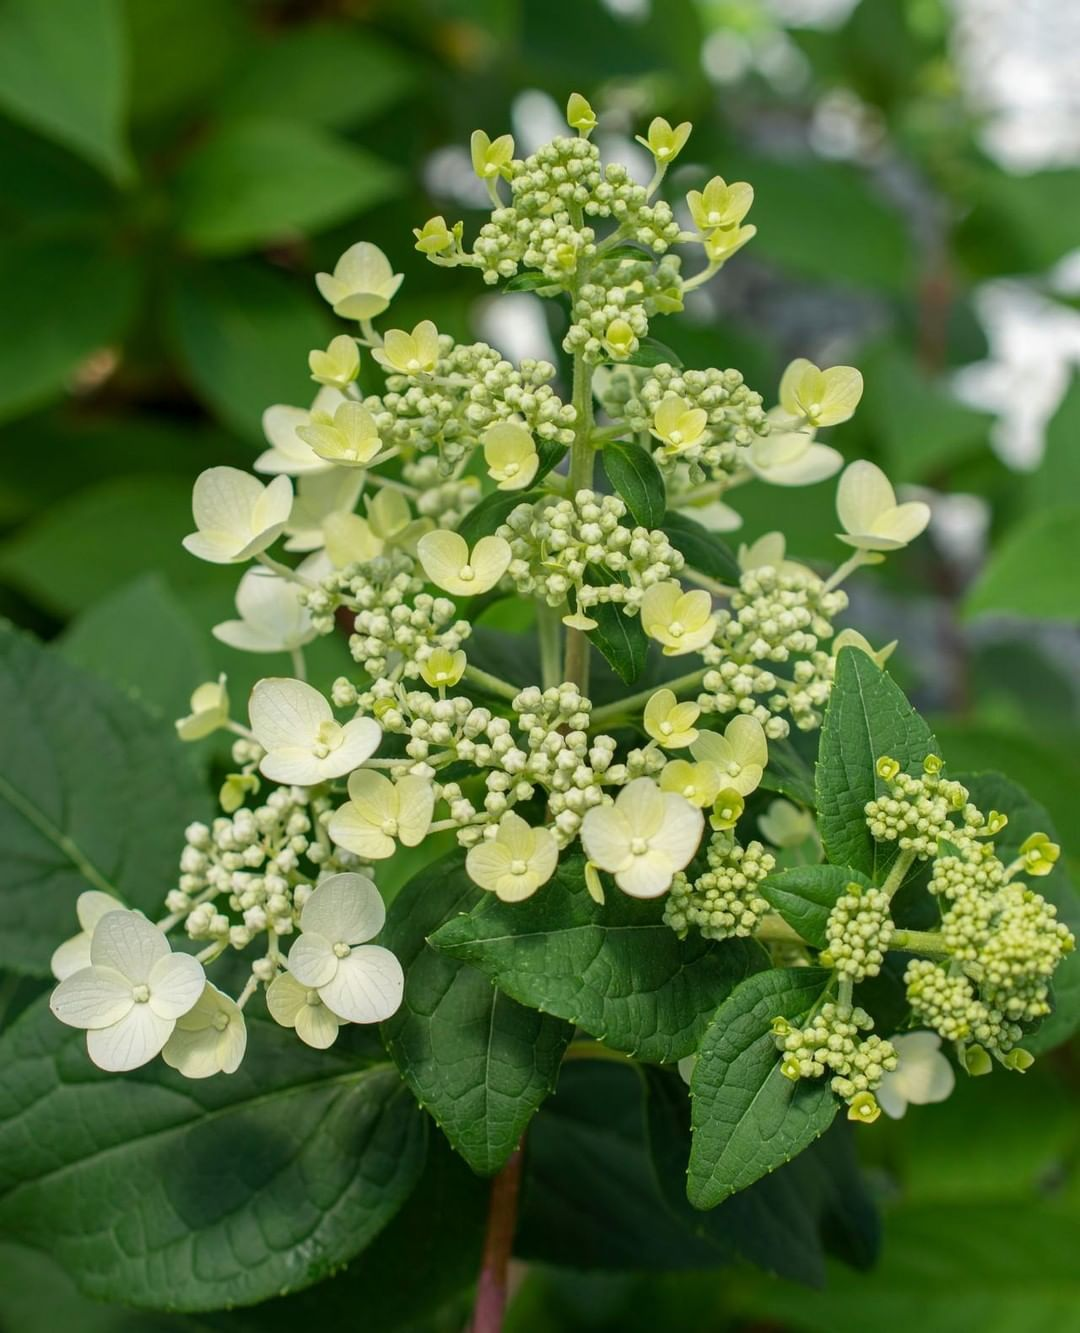 Say Hello To Fire And Ice Hydrangea This Beauty Has Three Seasons Of Color On One Plant It Blooms Cream During The Spring Pink Mid Plants Bloom Fire And Ice